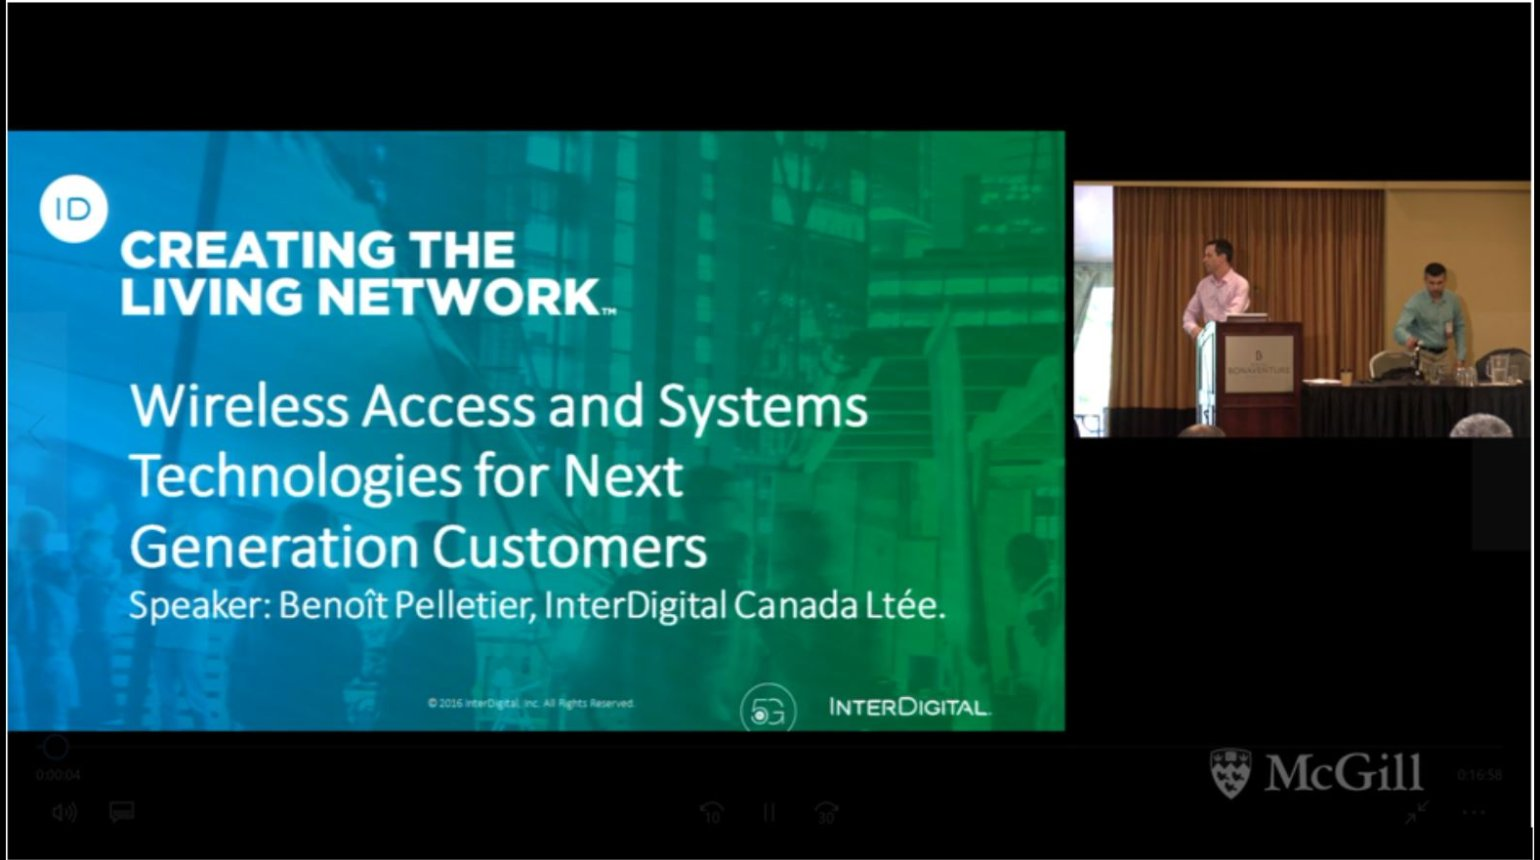 Video - Customer Service Network in 5G: Pelletier